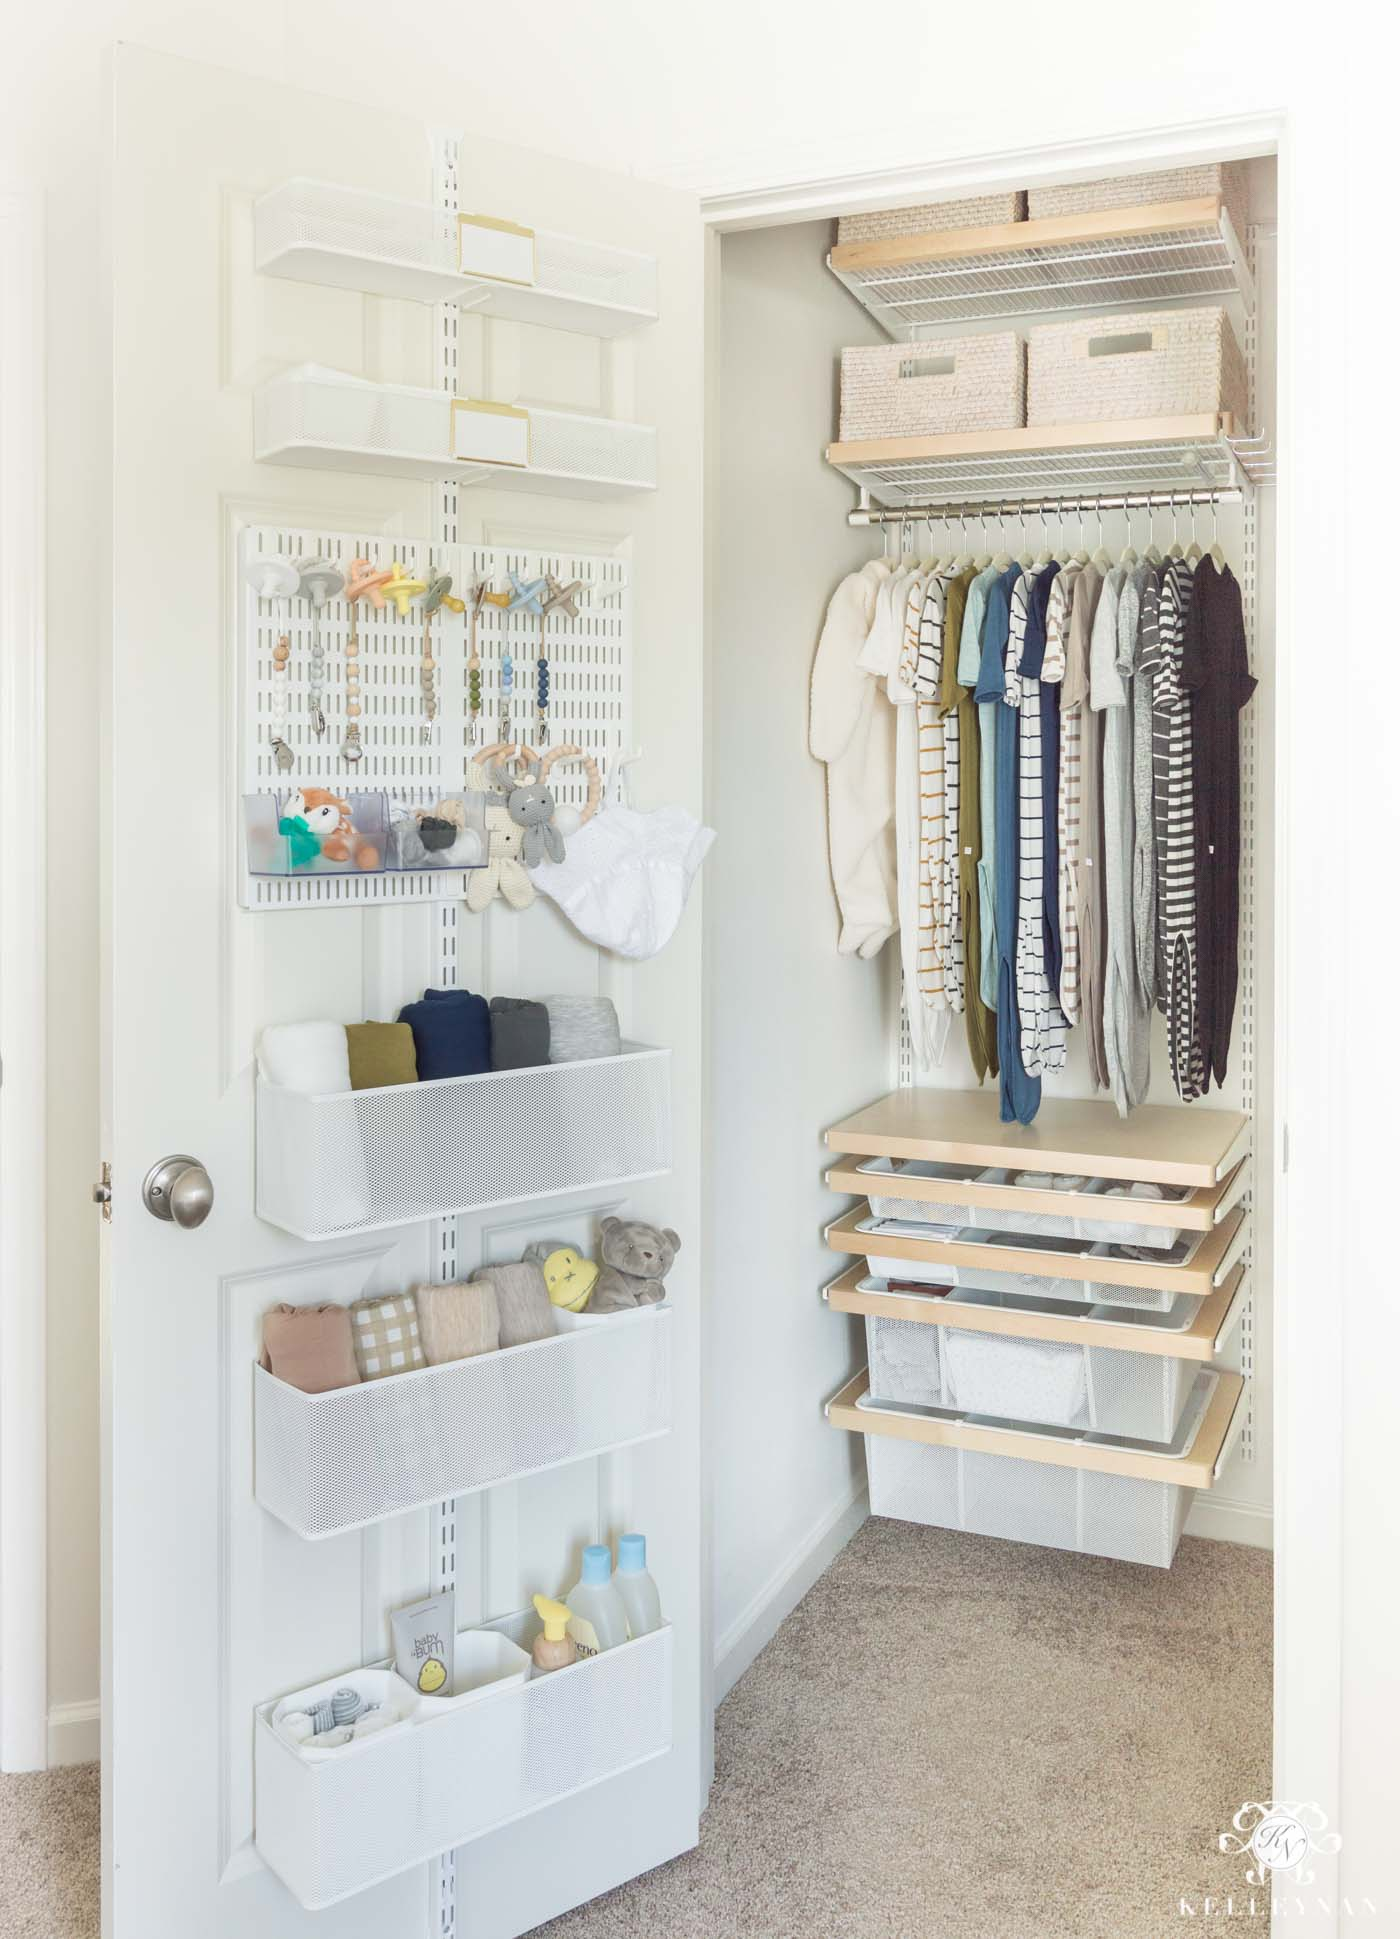 The Nursery Closet Planned And Organized To The Max